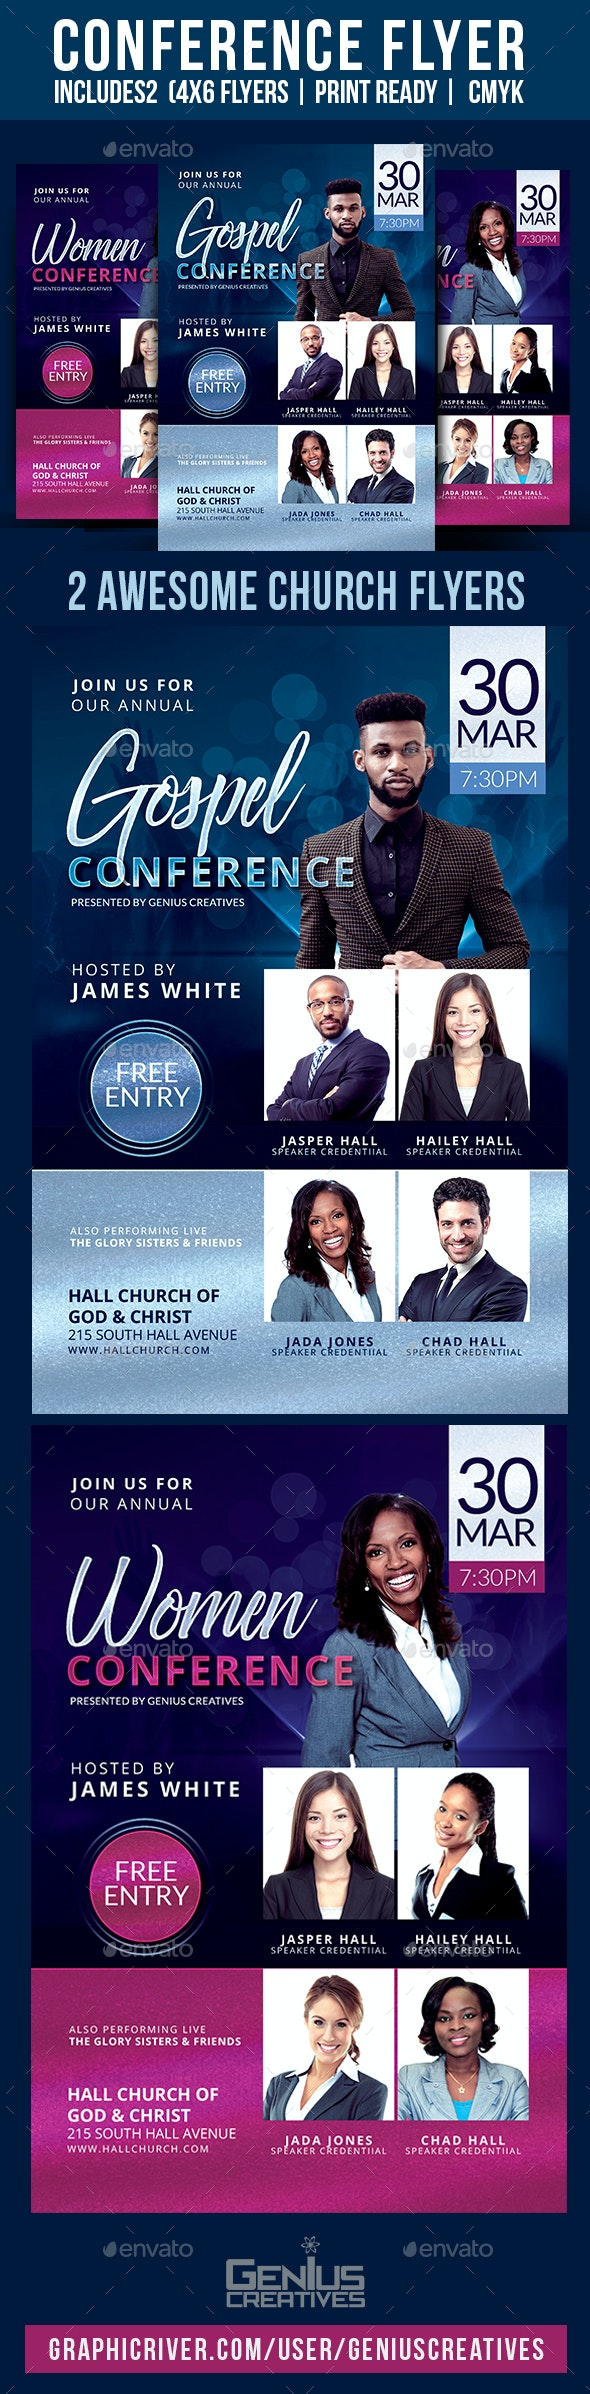 Church Conference  Flyer Template V5 - Church Flyers